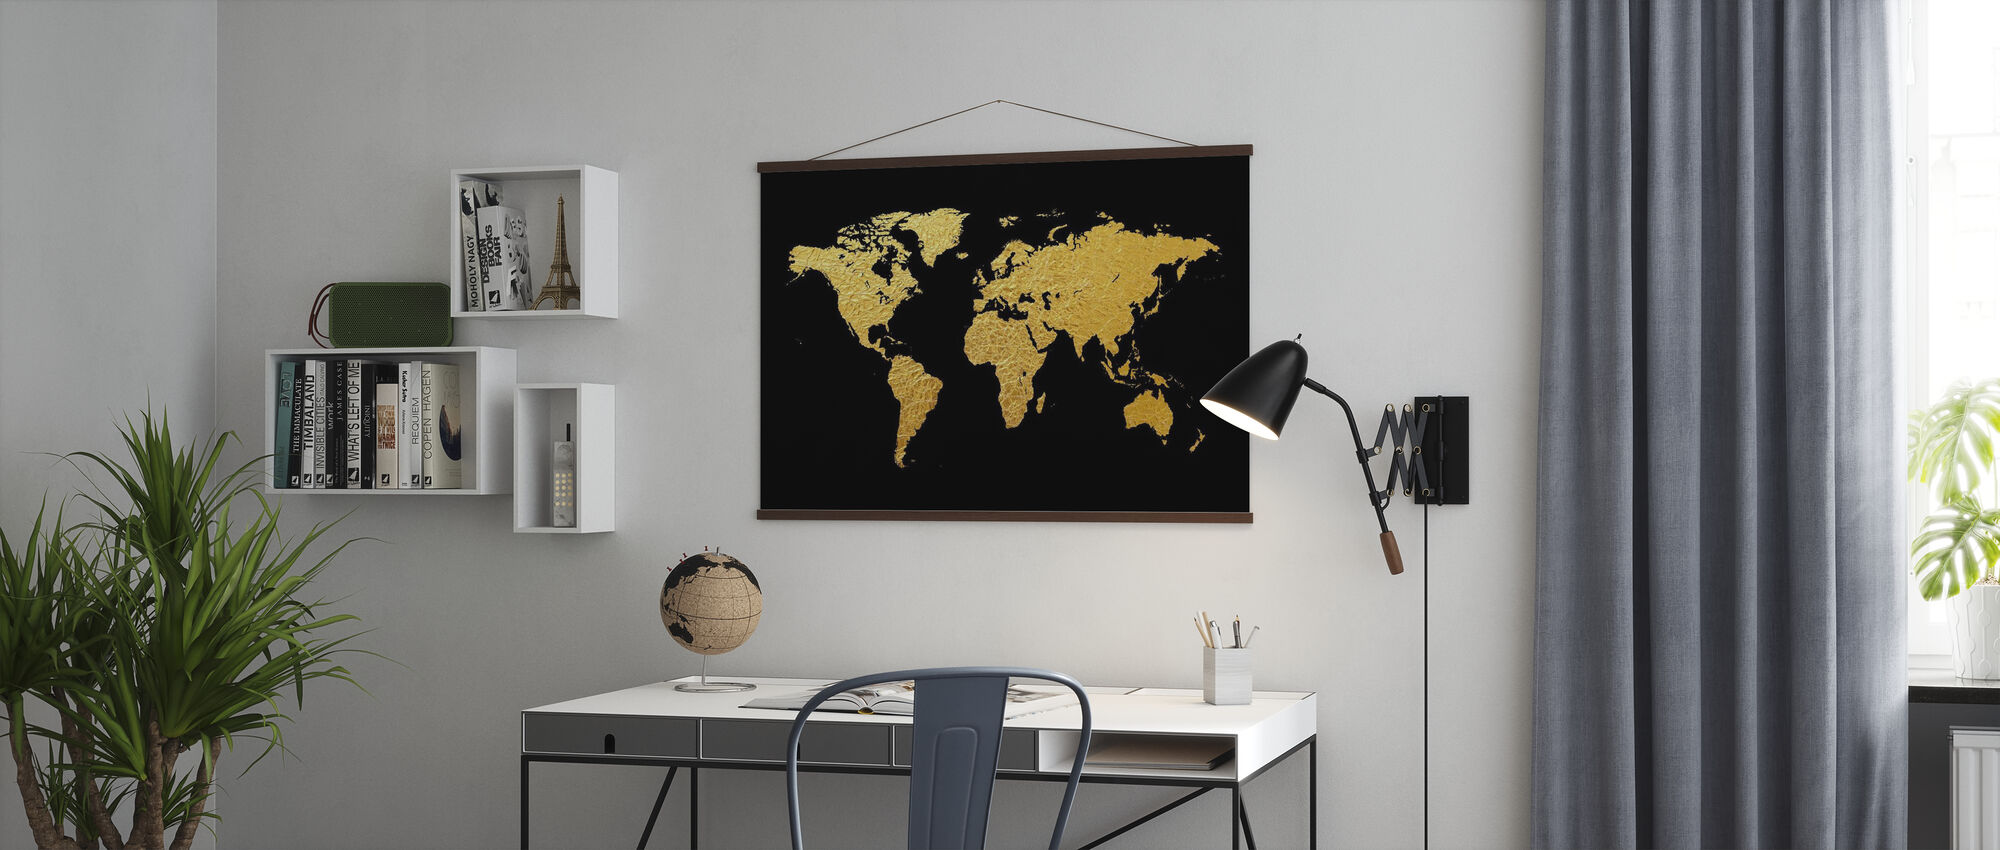 Gold World Map with Black Background - Poster - Office